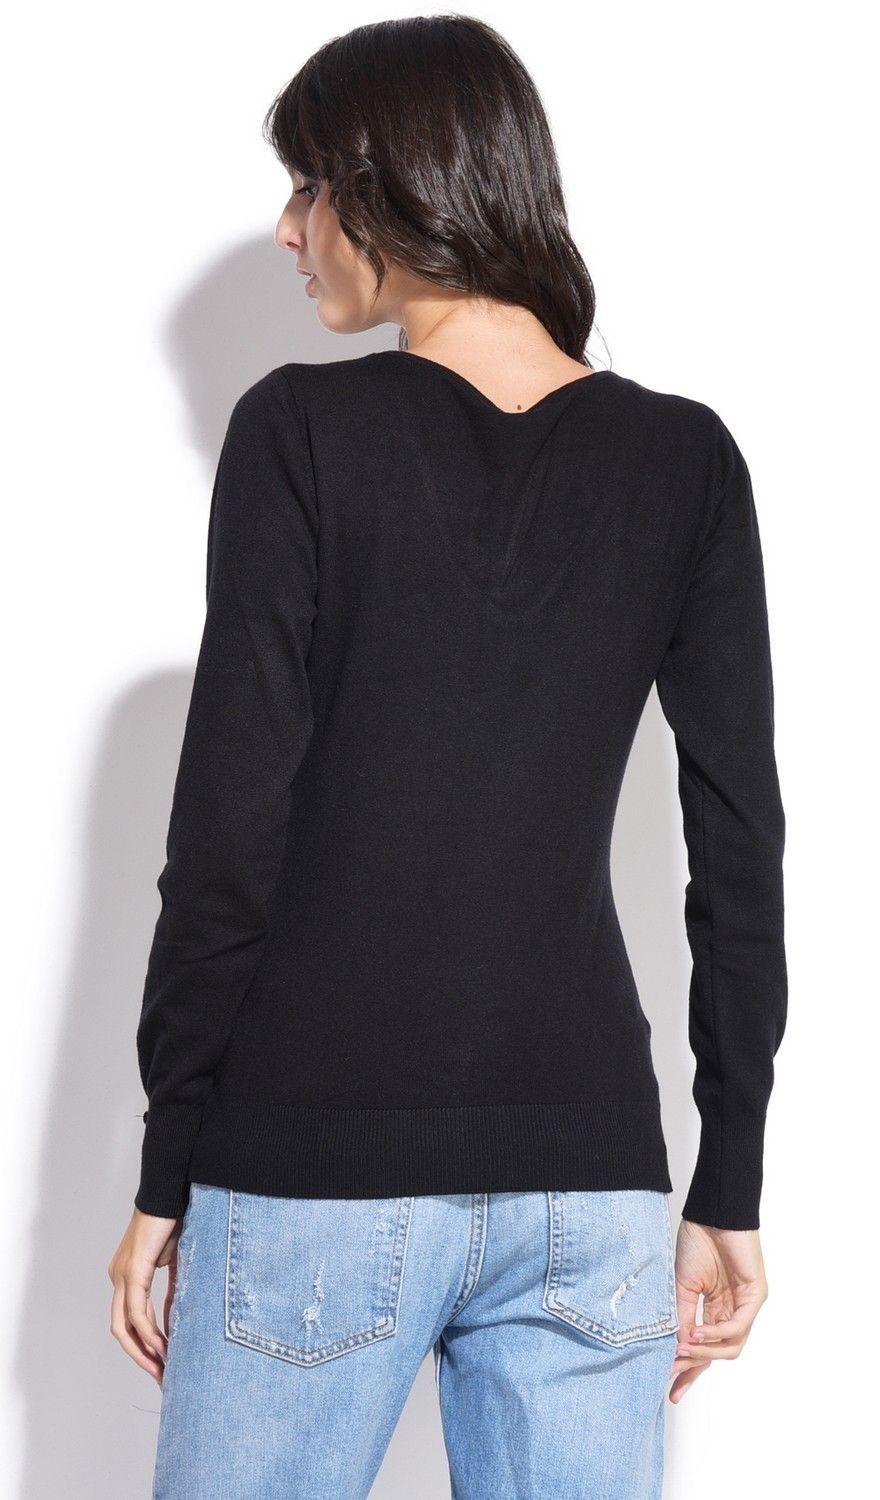 C&JO V-neck Sweater with Buttoned Sleeves in Black